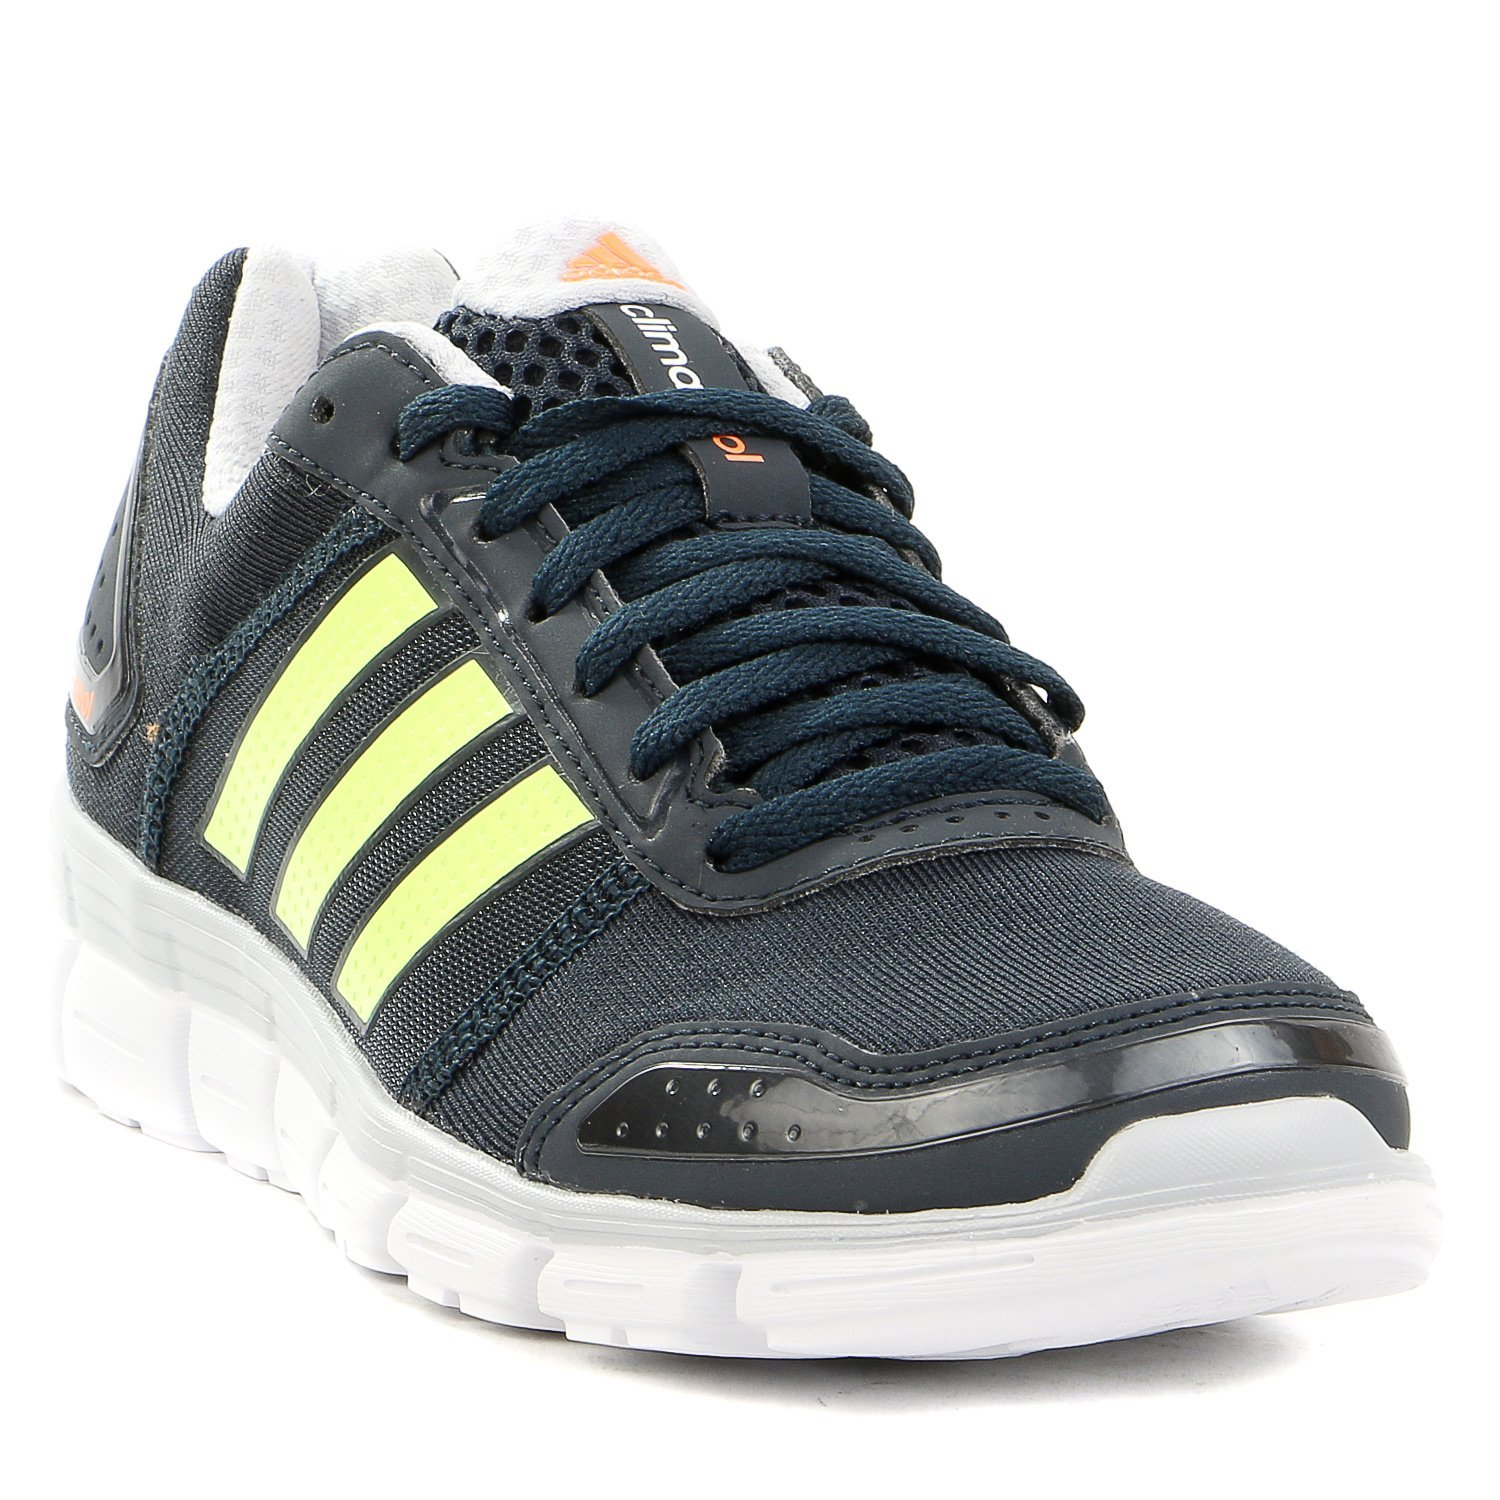 Siempre exposición Tahití  adidas climacool running shoes Off 52% - www.phpfresher.com